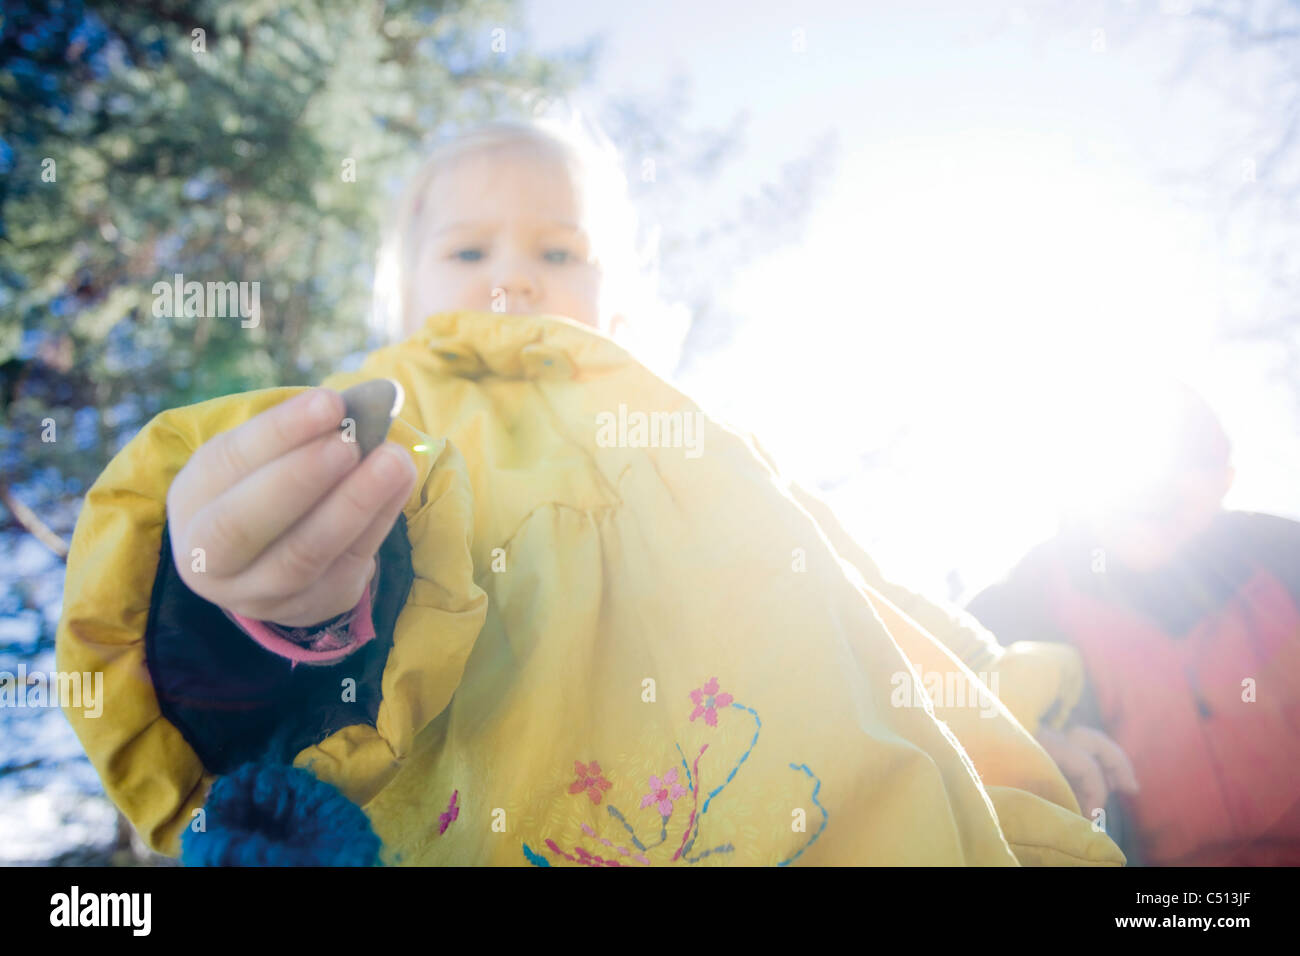 Baby girl looking at pebble in hand curiously, low angle view - Stock Image